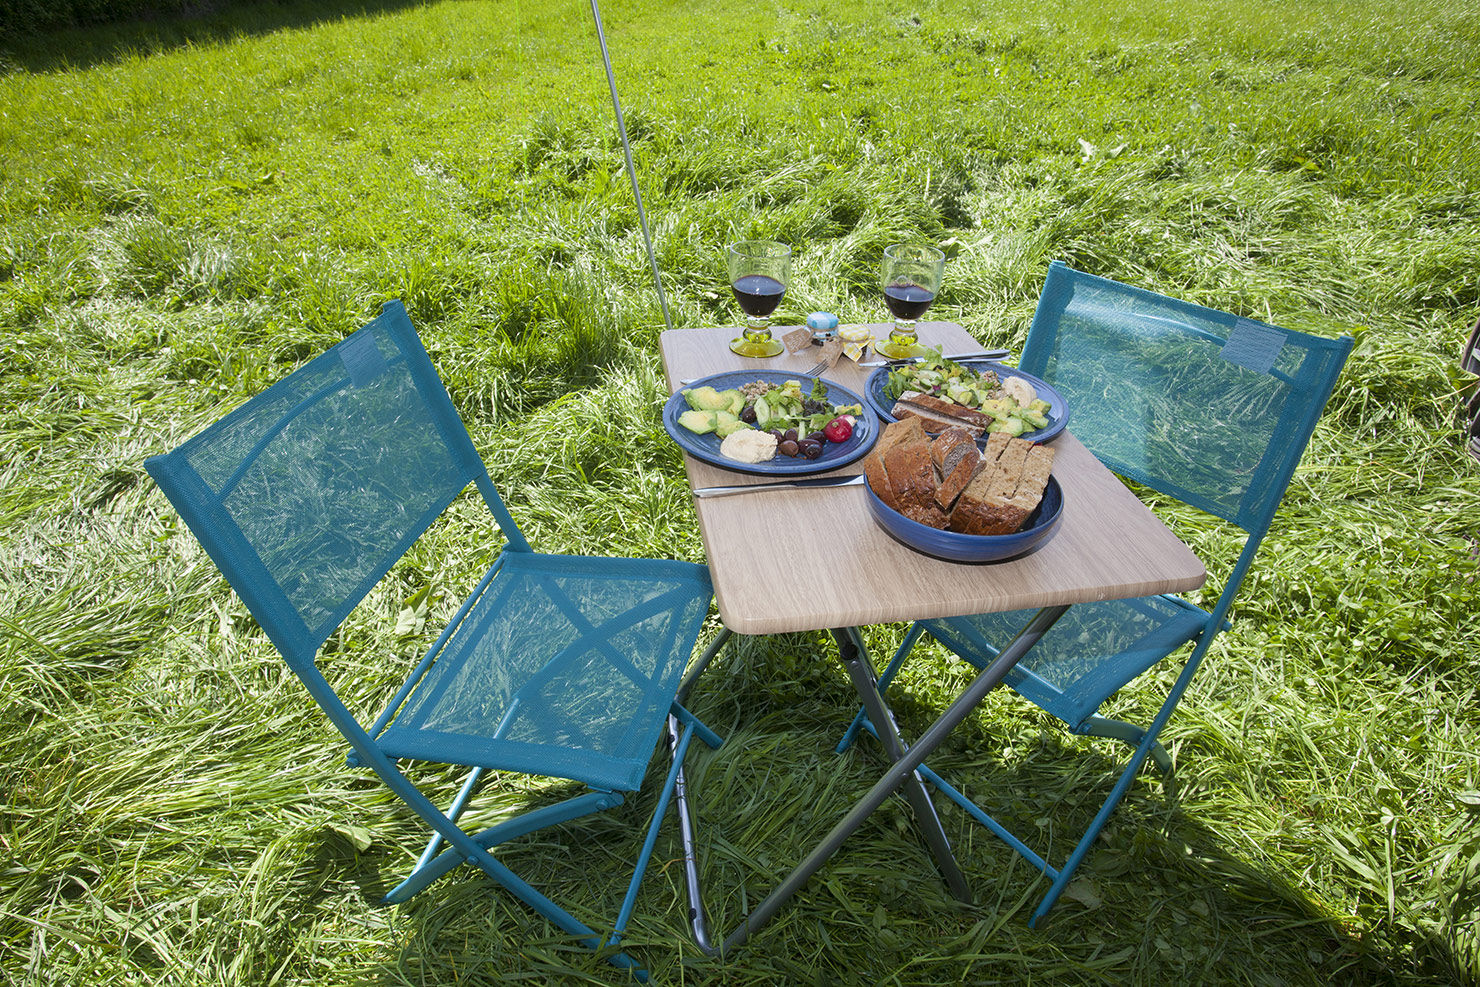 Table and Chairs for alfresco dining.